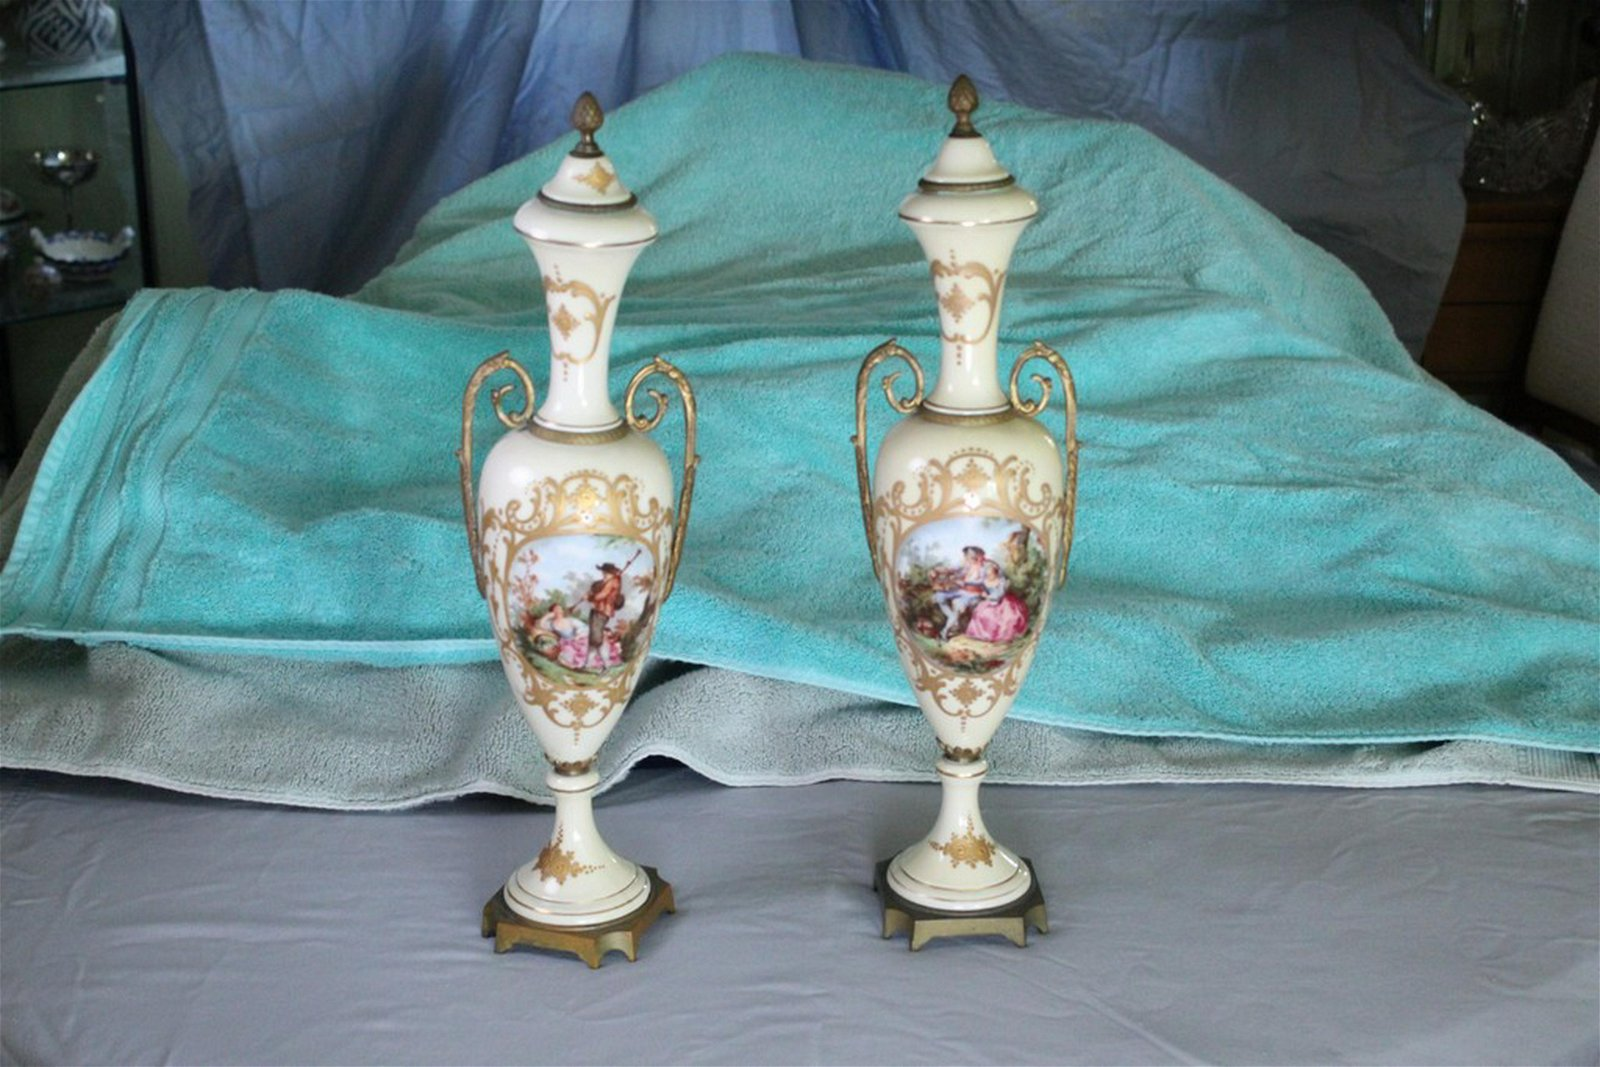 Pair of Antique French Urns